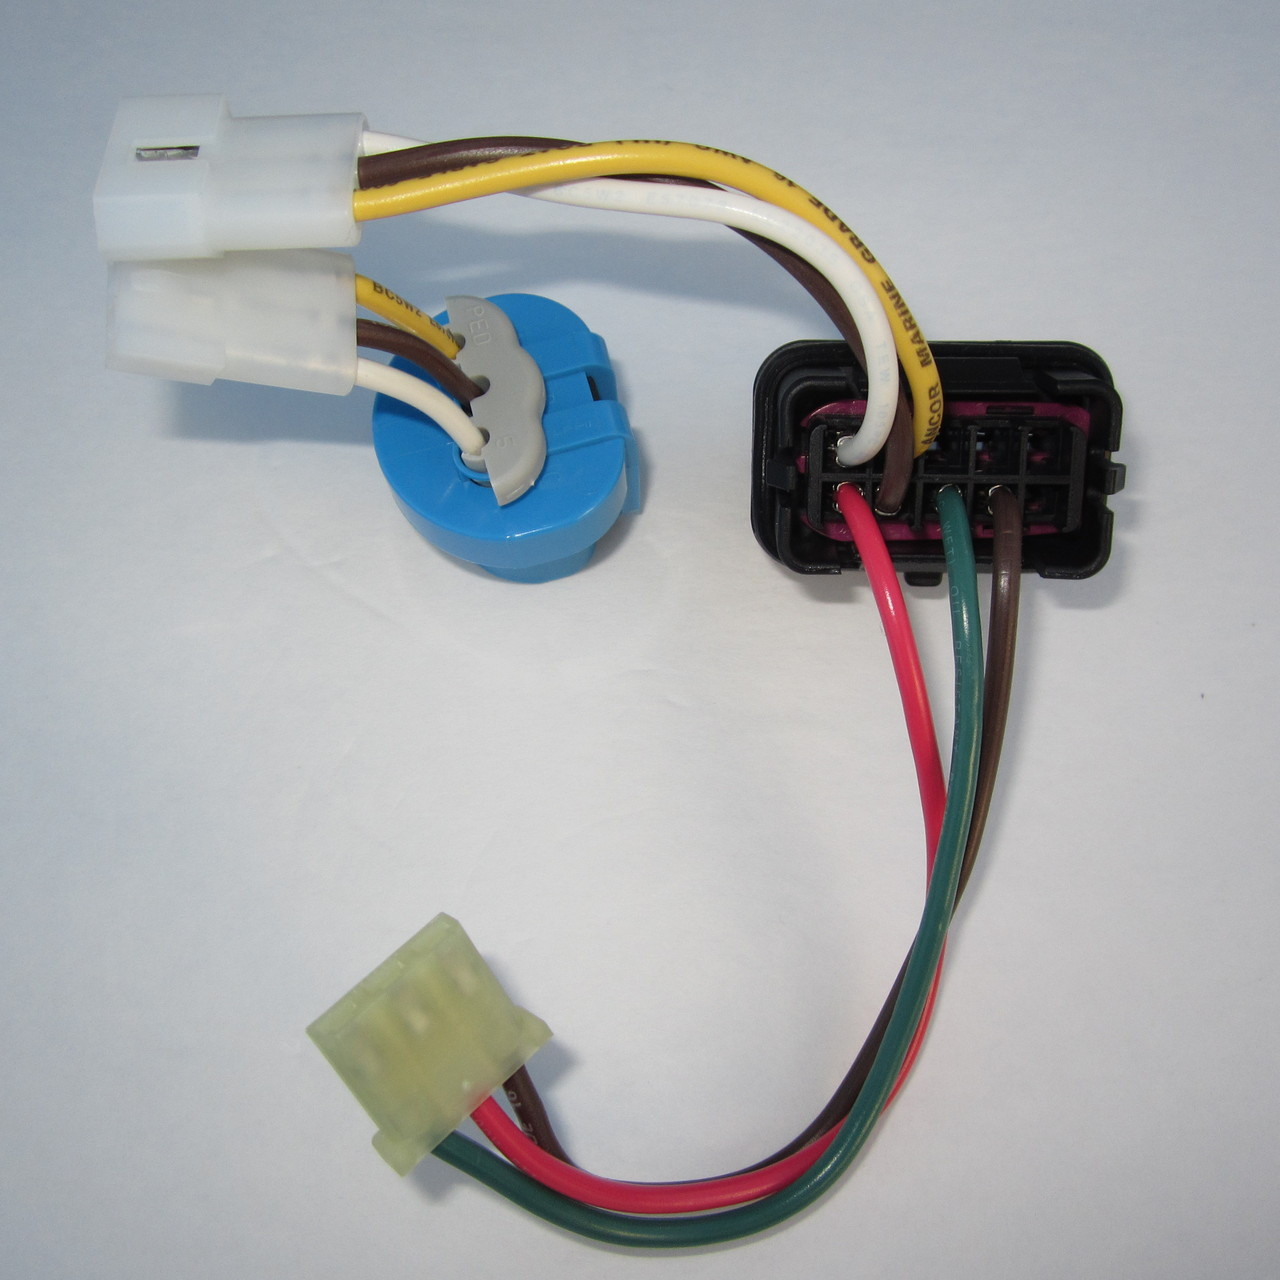 small resolution of brand new complete 9004 9007 headlight wiring harness for mkiv jetta